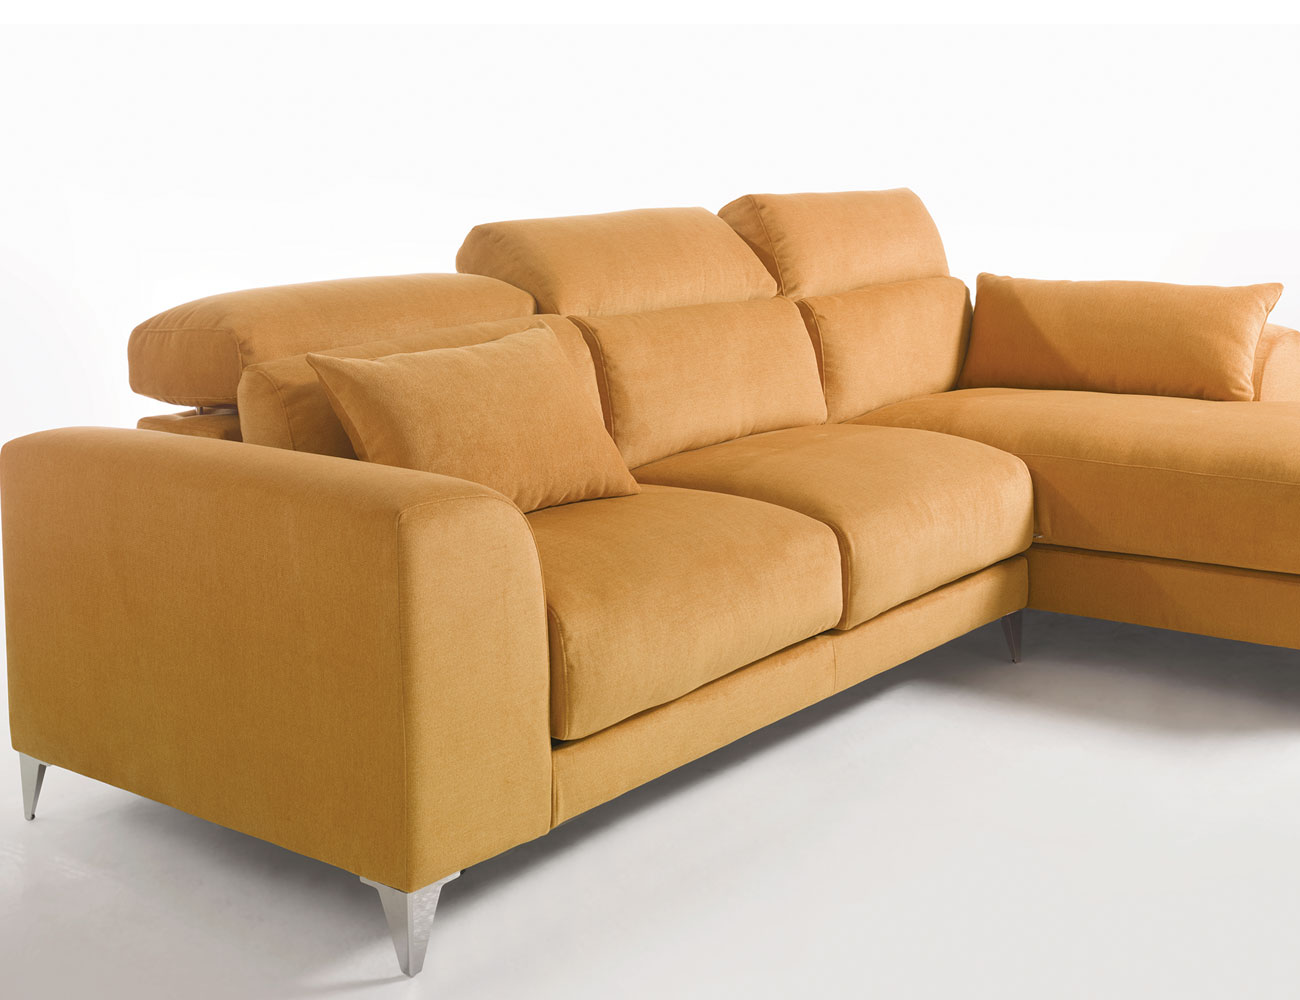 Sofa chaiselongue gran lujo decorativo patas altas amarillo 243